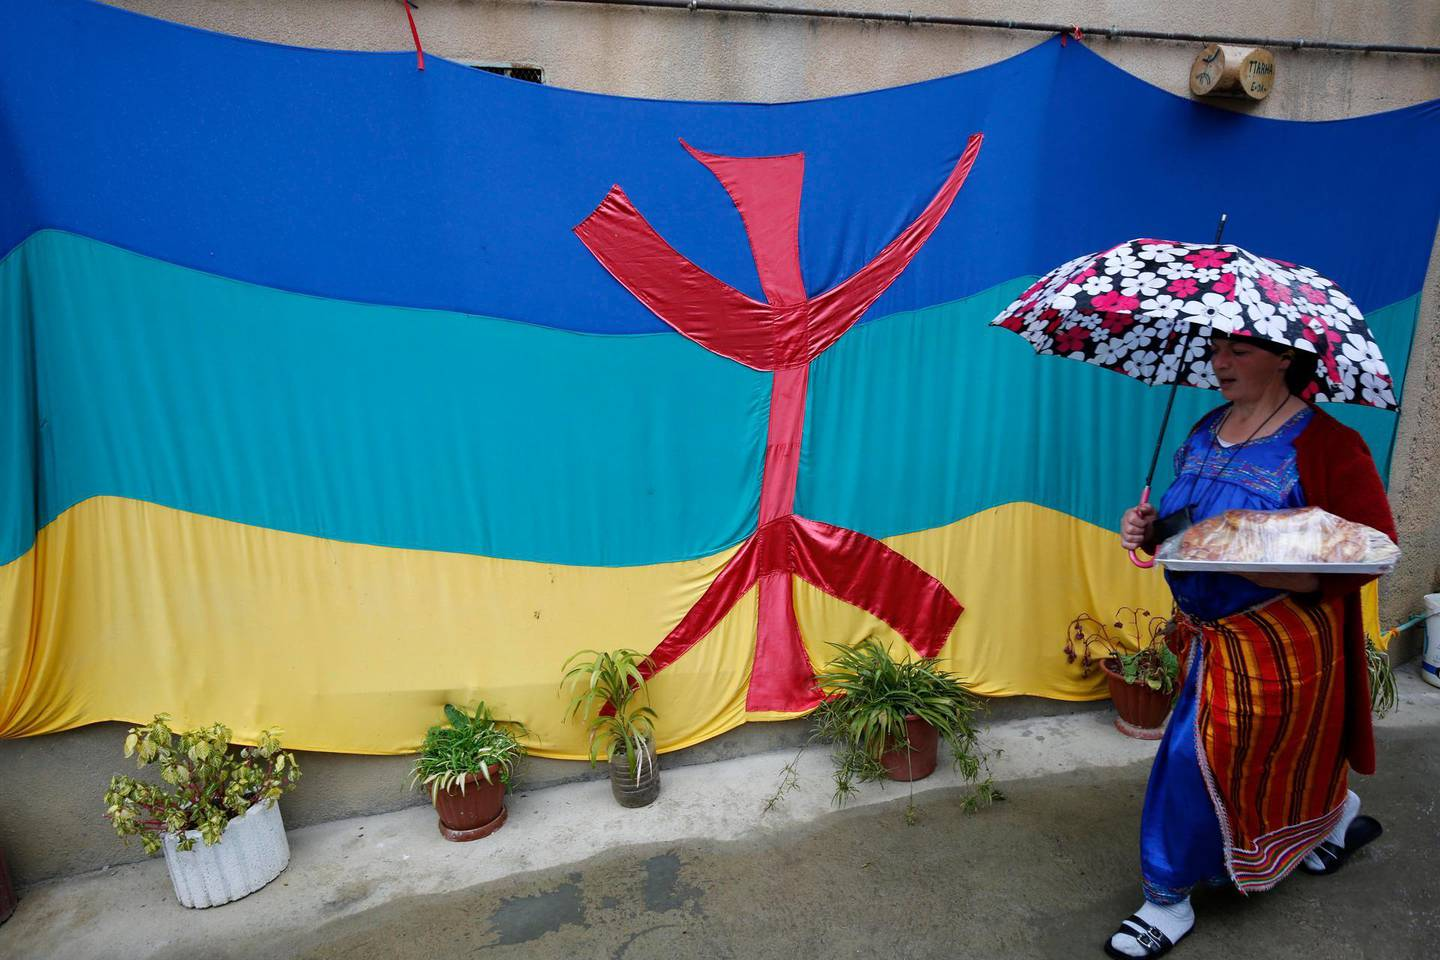 epa08122583 A woman walks next to a Berber flag as Algerian Berbers celebrate New Year 2970 in Sahel village, south of Tizi-Ouzou, east of Algiers, 12 January 2020. Berbers, an ethnic group from the pre-Arab populations of North Africa, are currently celebrating their New Year. Yennayer, the first month of the Berber Year, is marked as a national holiday in Algeria for the third time.  EPA/STRINGER